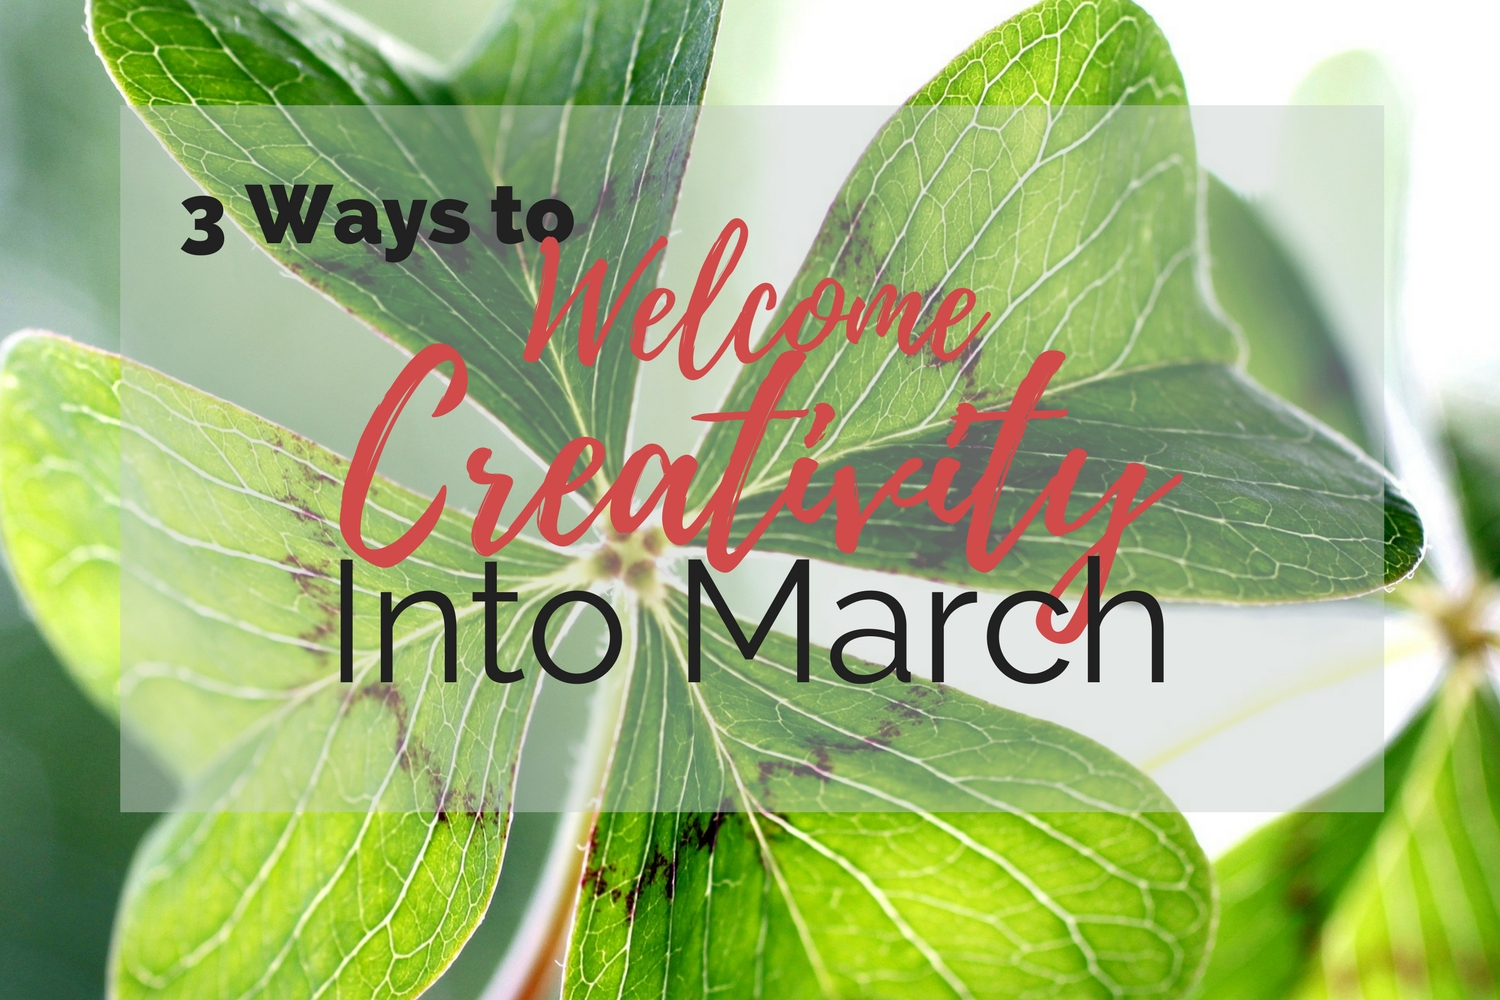 3 Ways to Welcome Creativity Into March